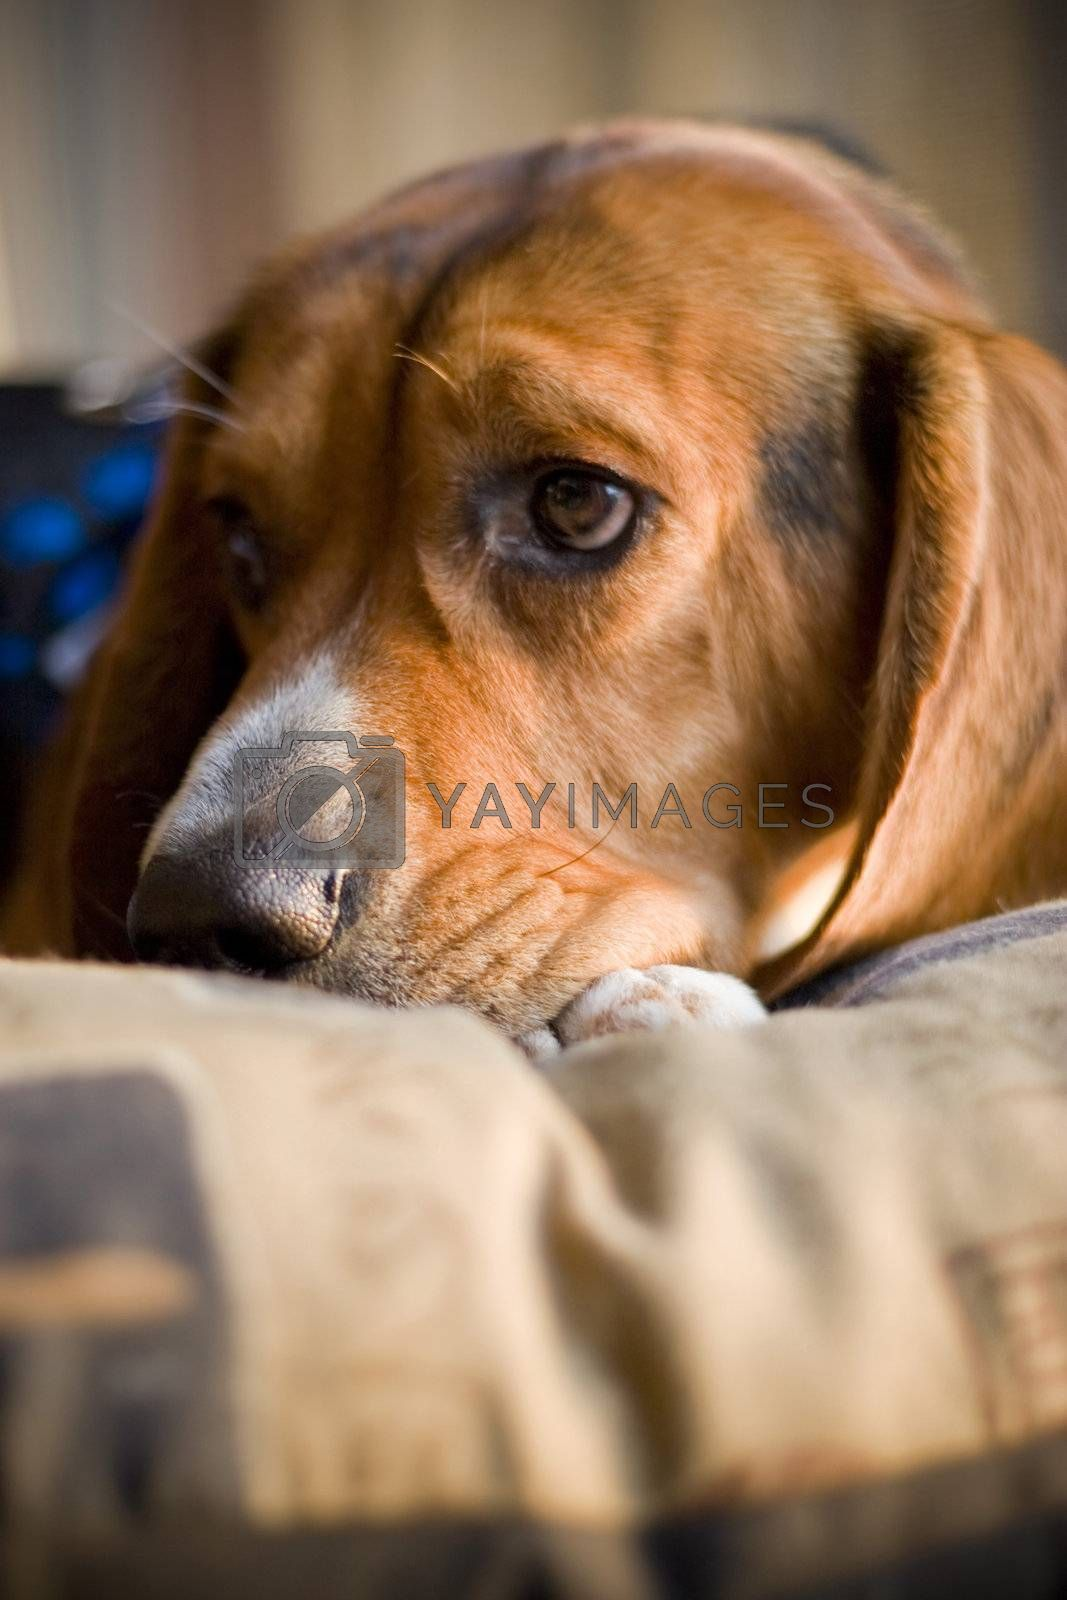 A sleepy beagle pup resting on its bed.